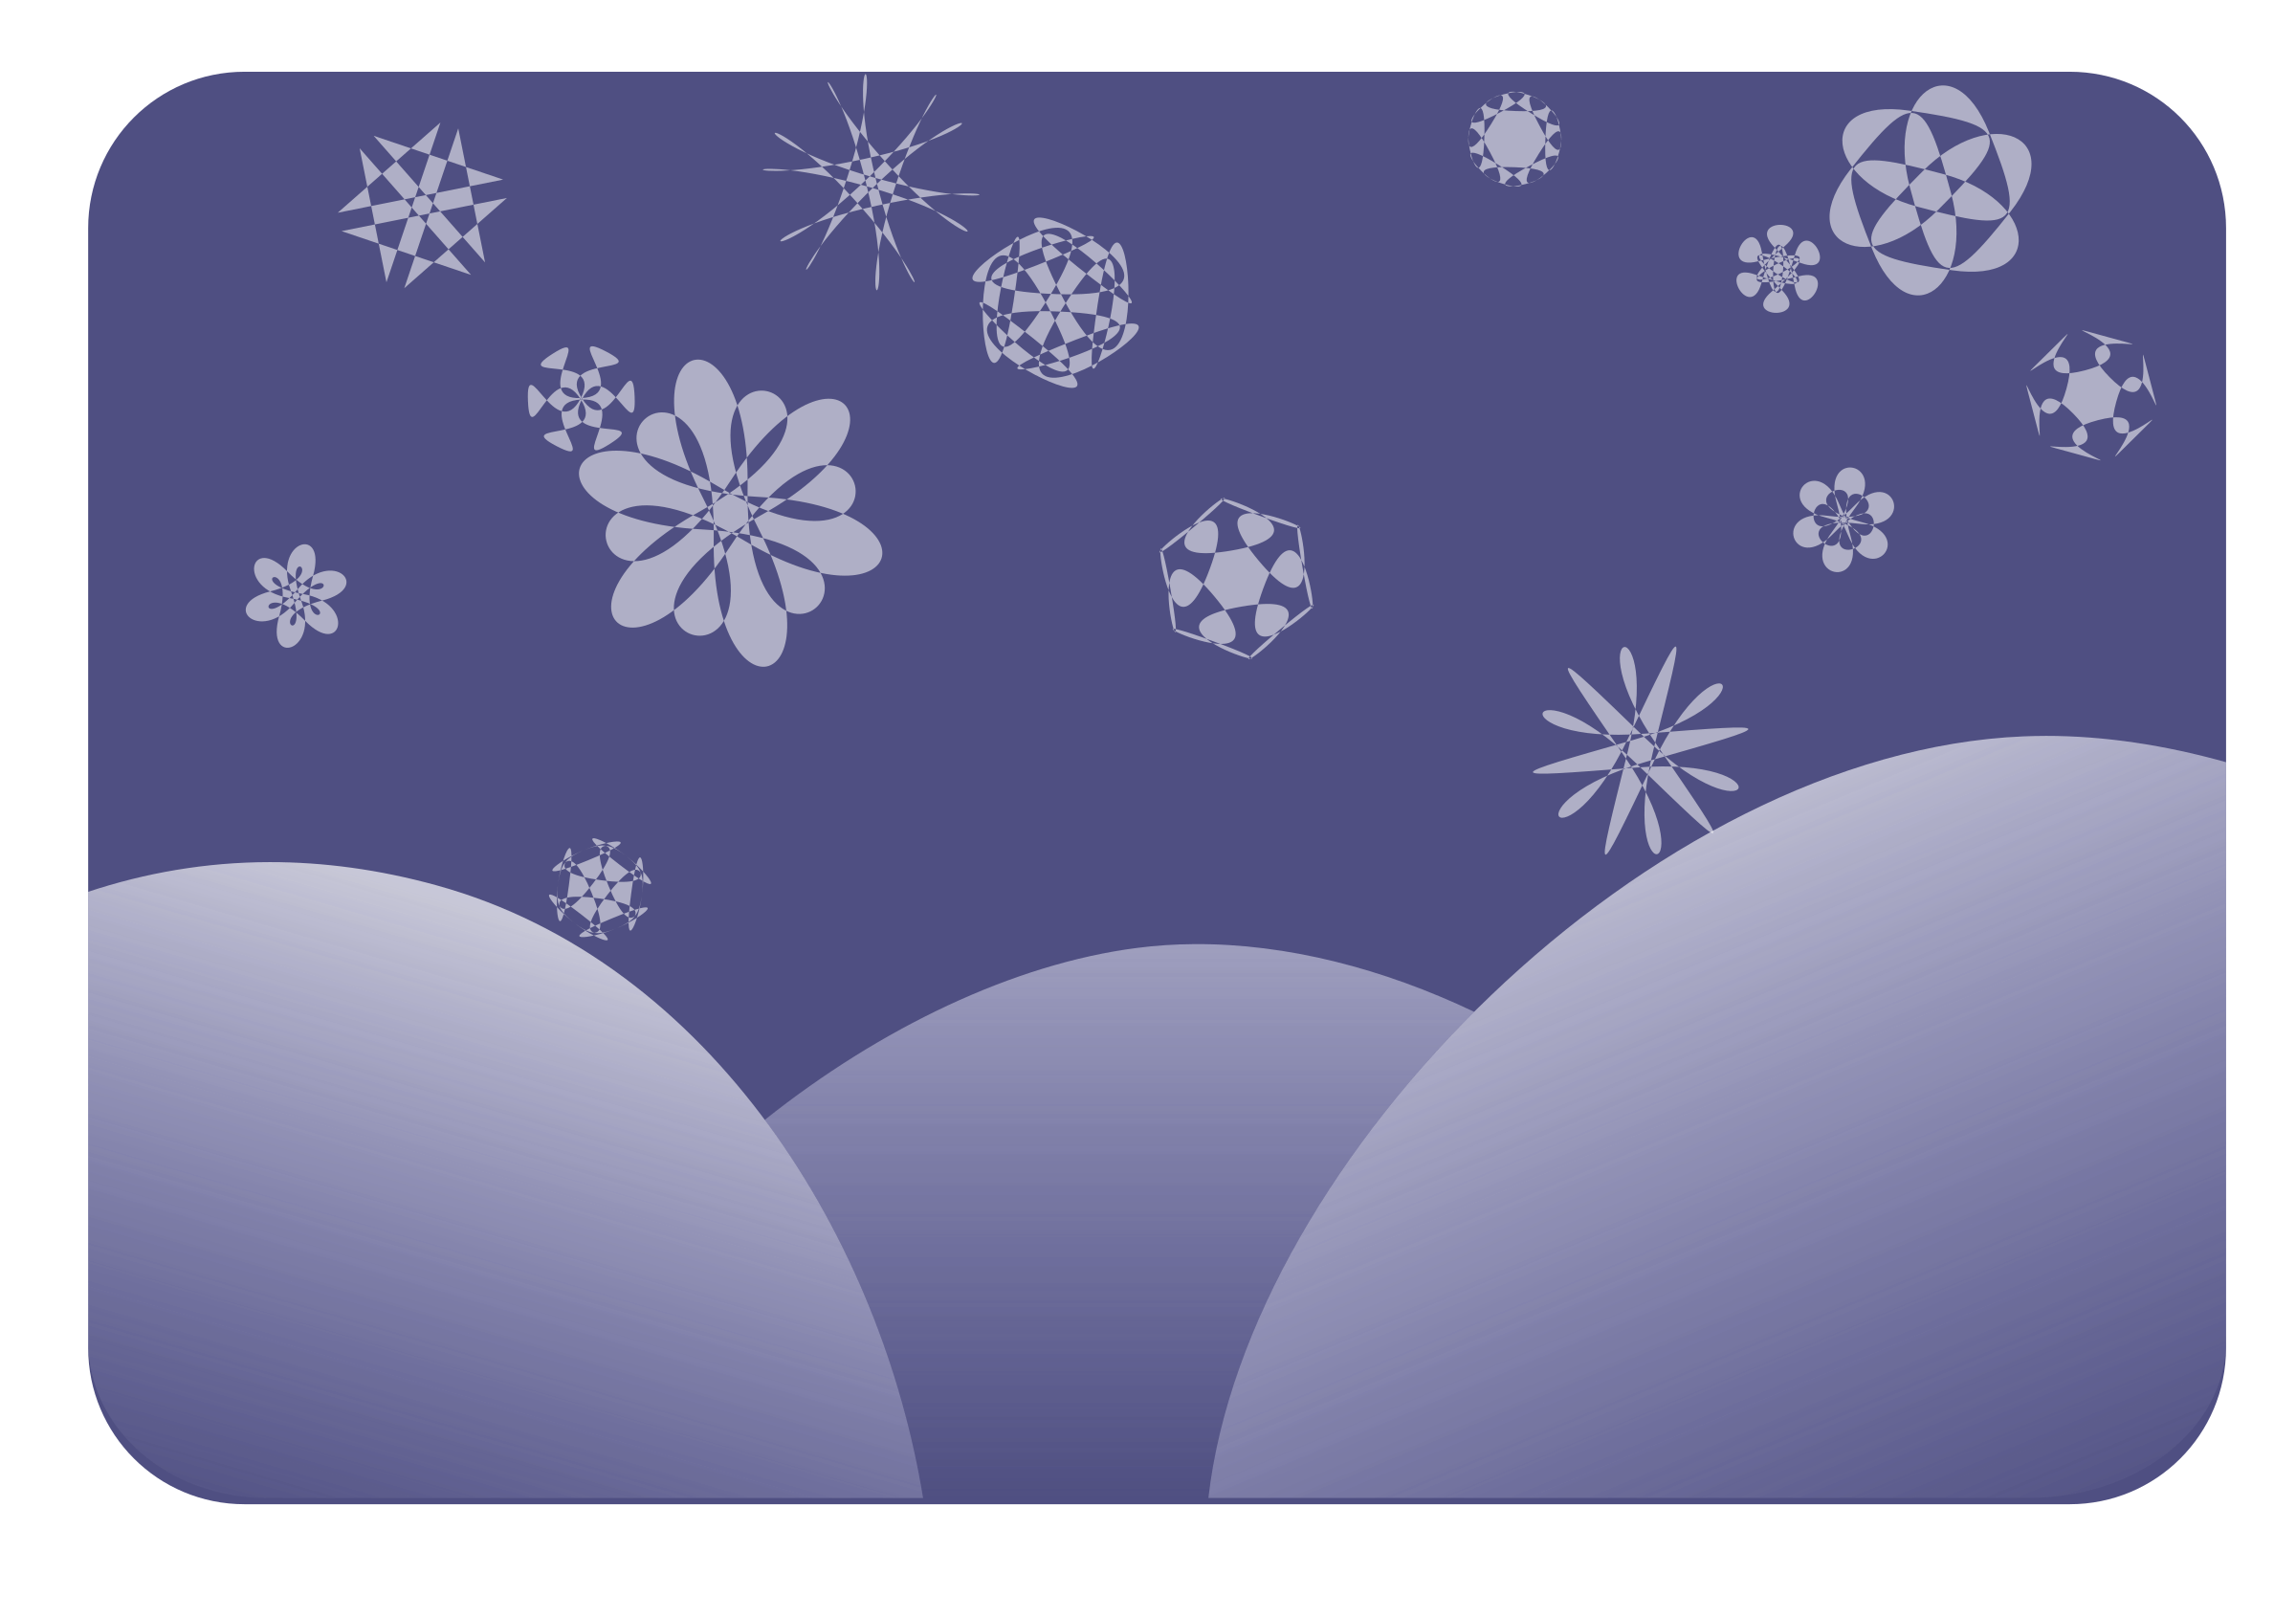 Navy blue snowflake clipart clipart transparent stock Dark Blue Snowflakes Clipart (22+) clipart transparent stock